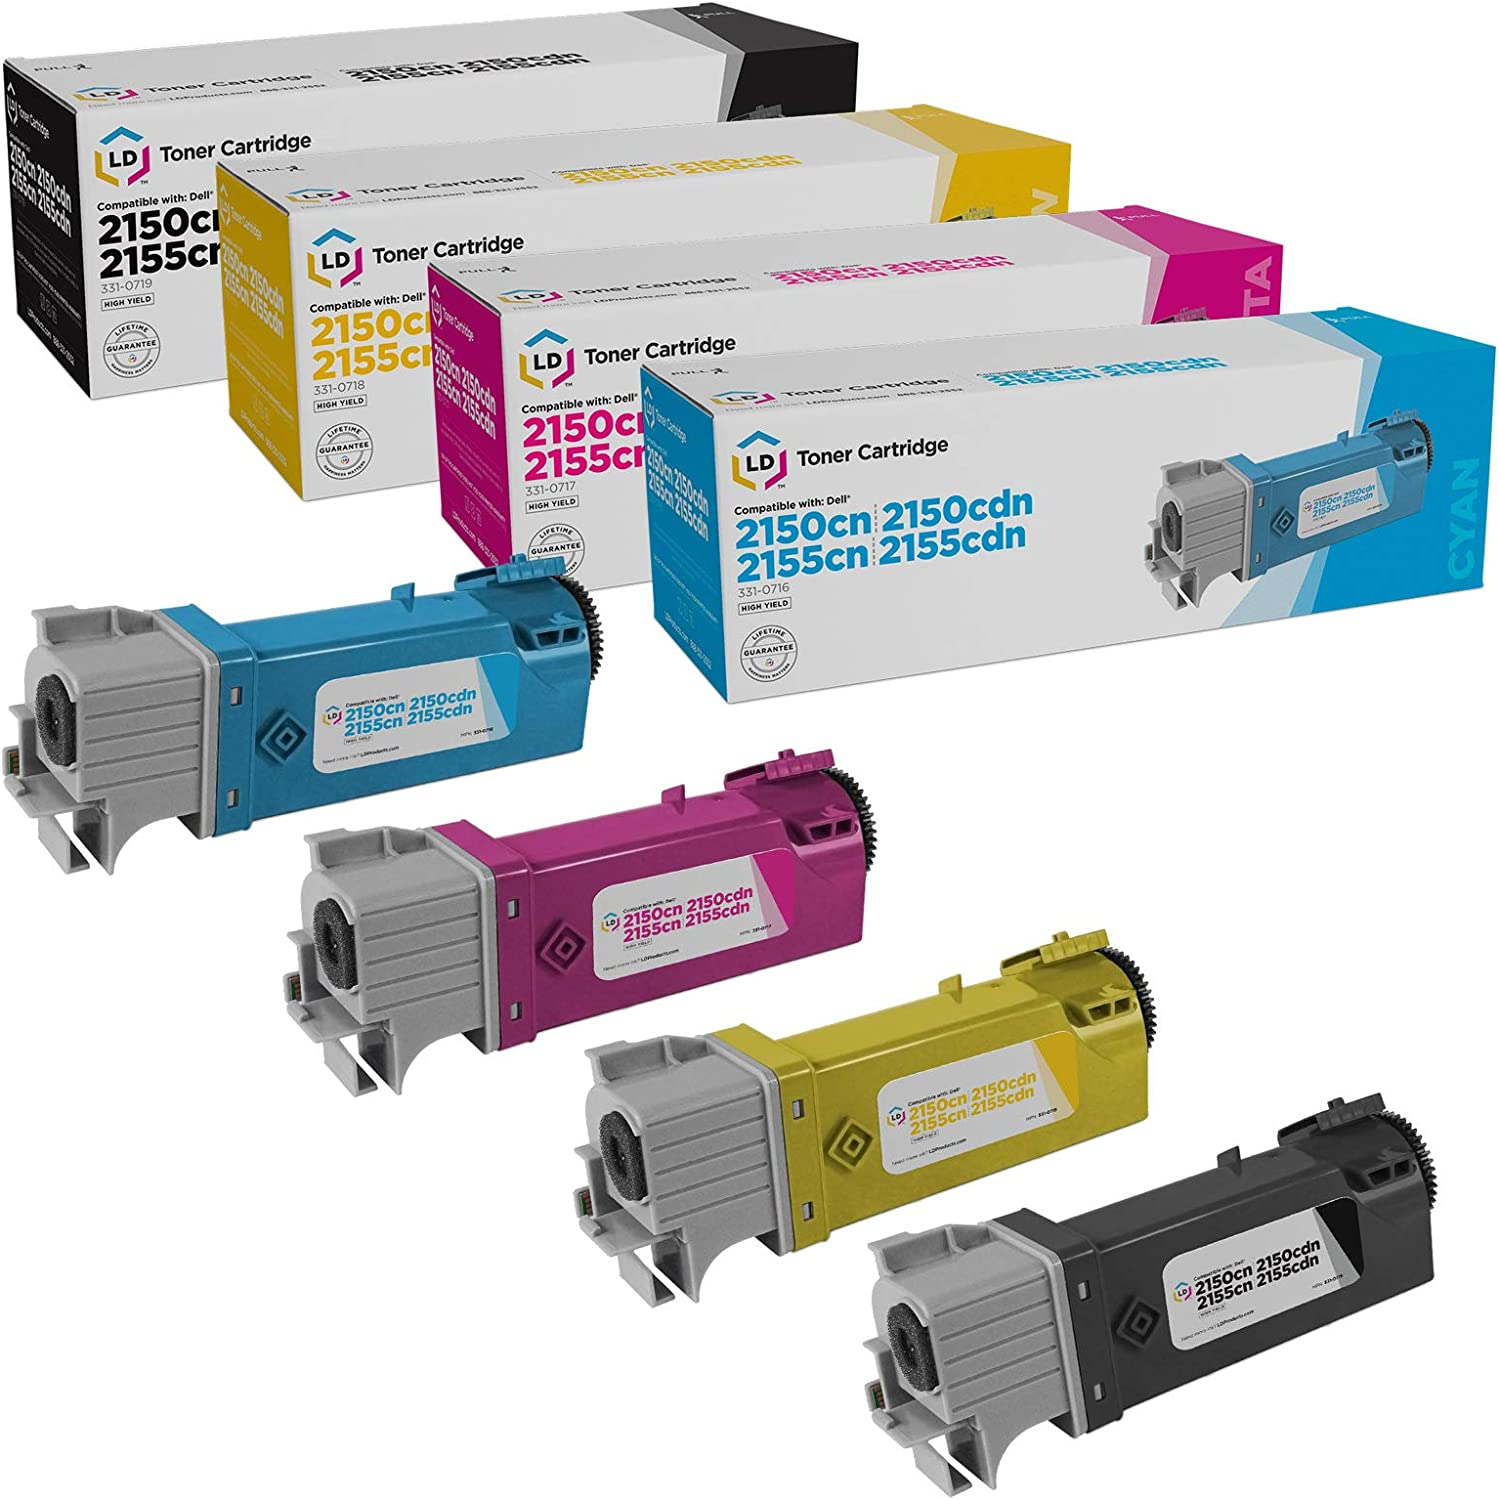 LD Compatible Toner Cartridge Replacements for Dell Color Laser 2150 & Dell Multi-Function 2155 High Yield (Black, Cyan, Magenta, Yellow, 4-Pack)